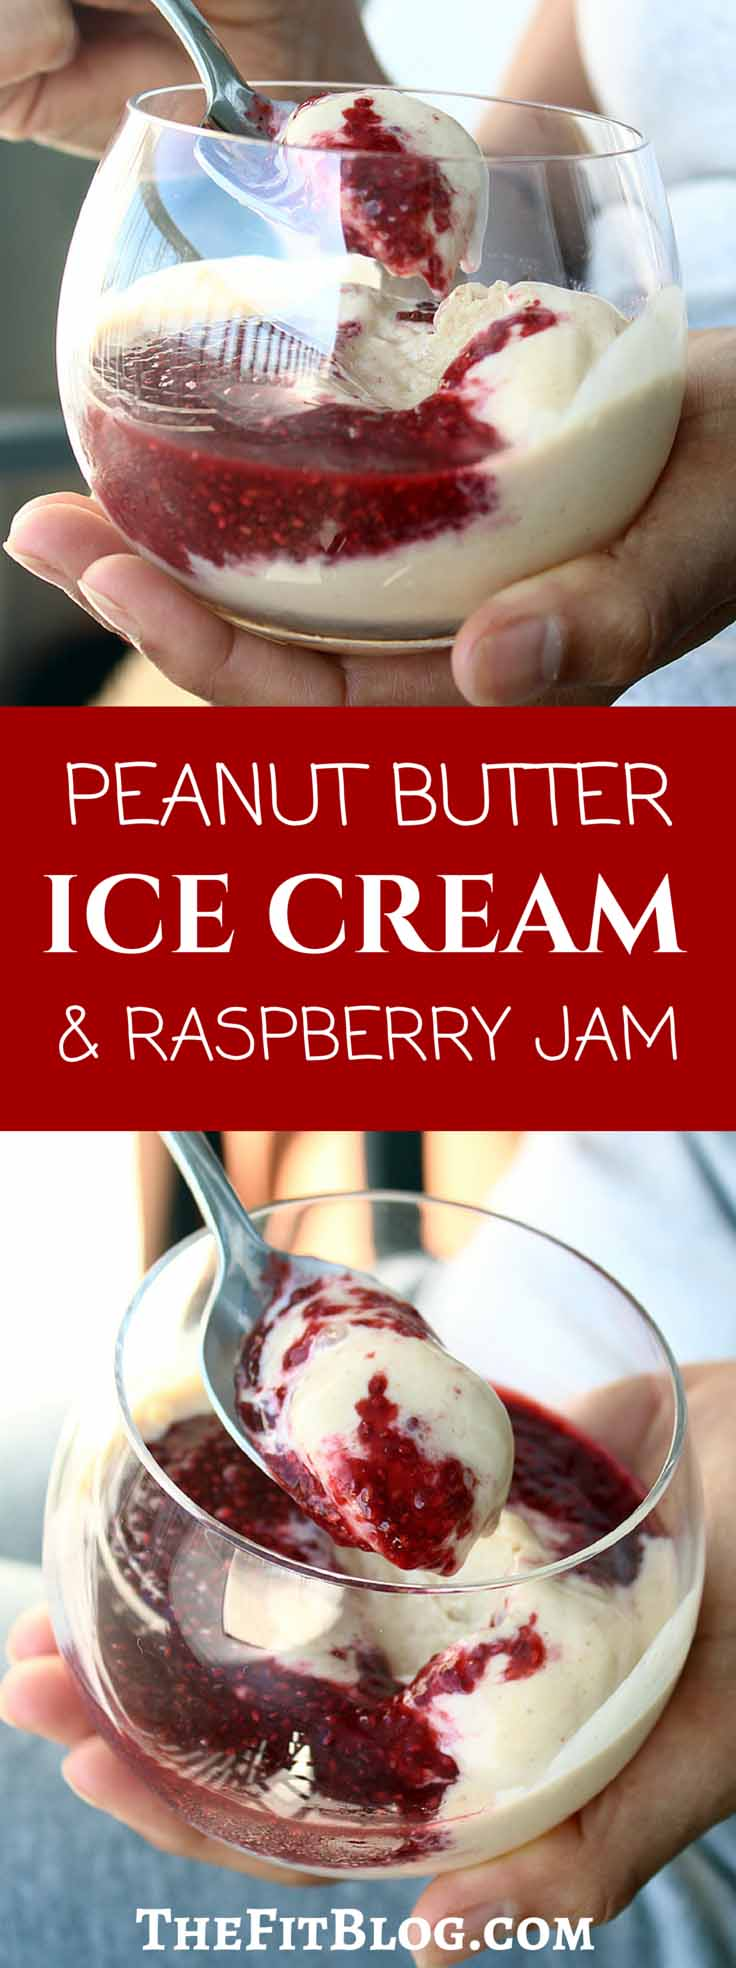 Low-carb, low-fat, high-protein peanut butter ice cream. Delicious! The perfect healthy fitness snack for hot summer days or after a good workout.